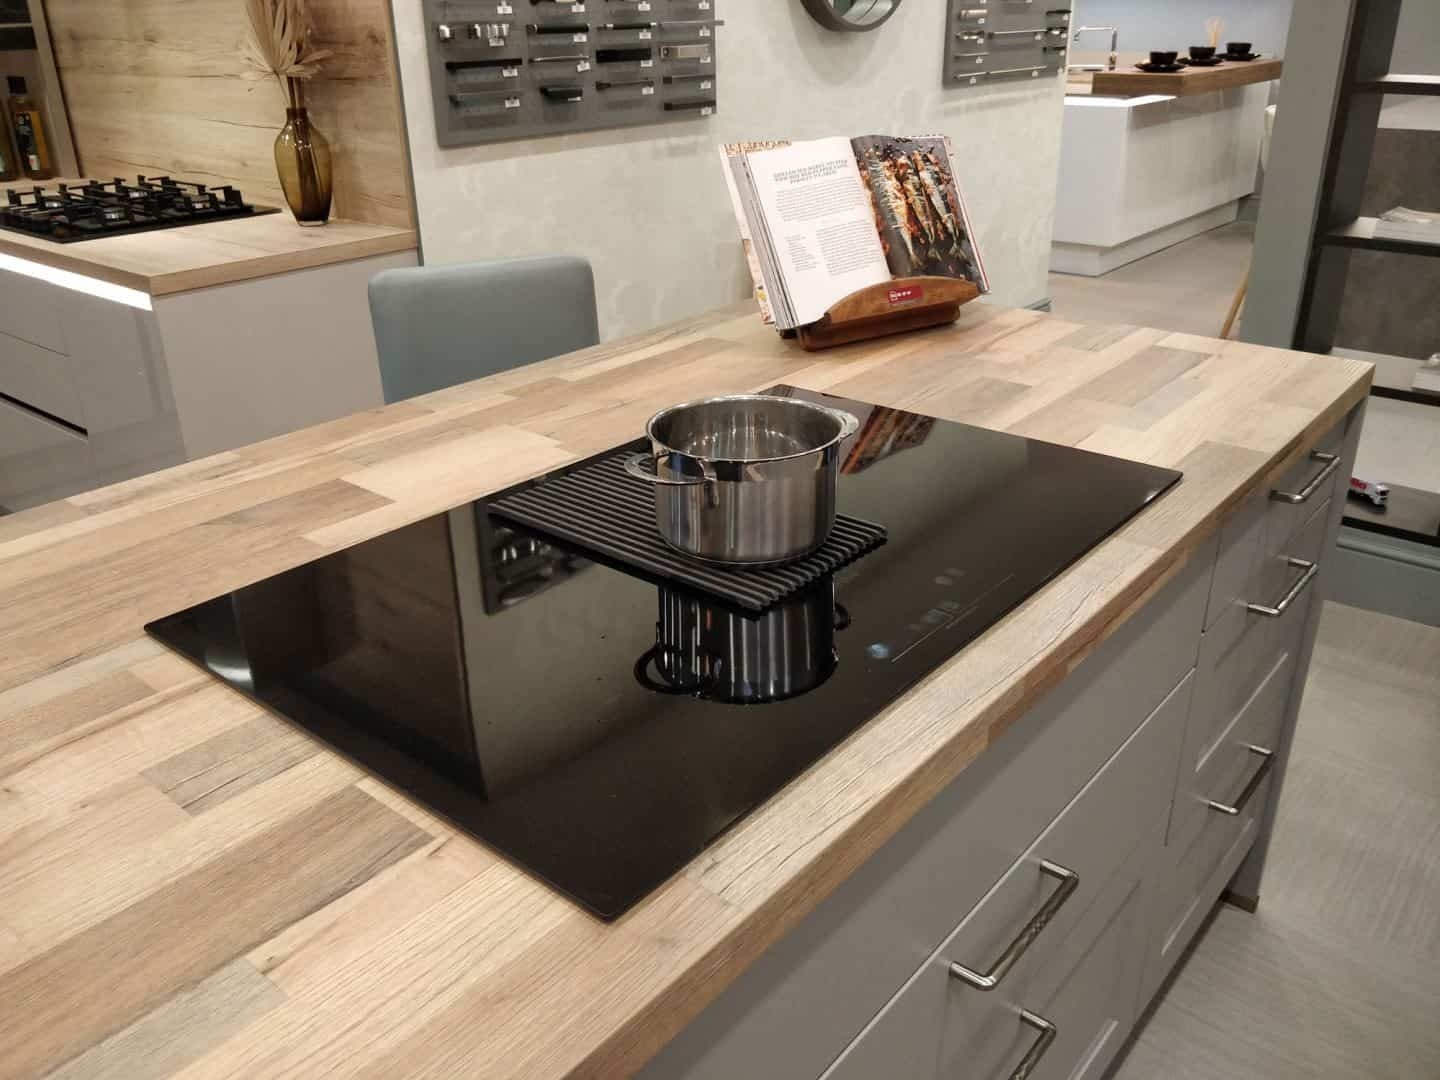 NikolaTesla Prime hob with integrated extractor from Elica on display in the Kitchen Kit showroom in Truro